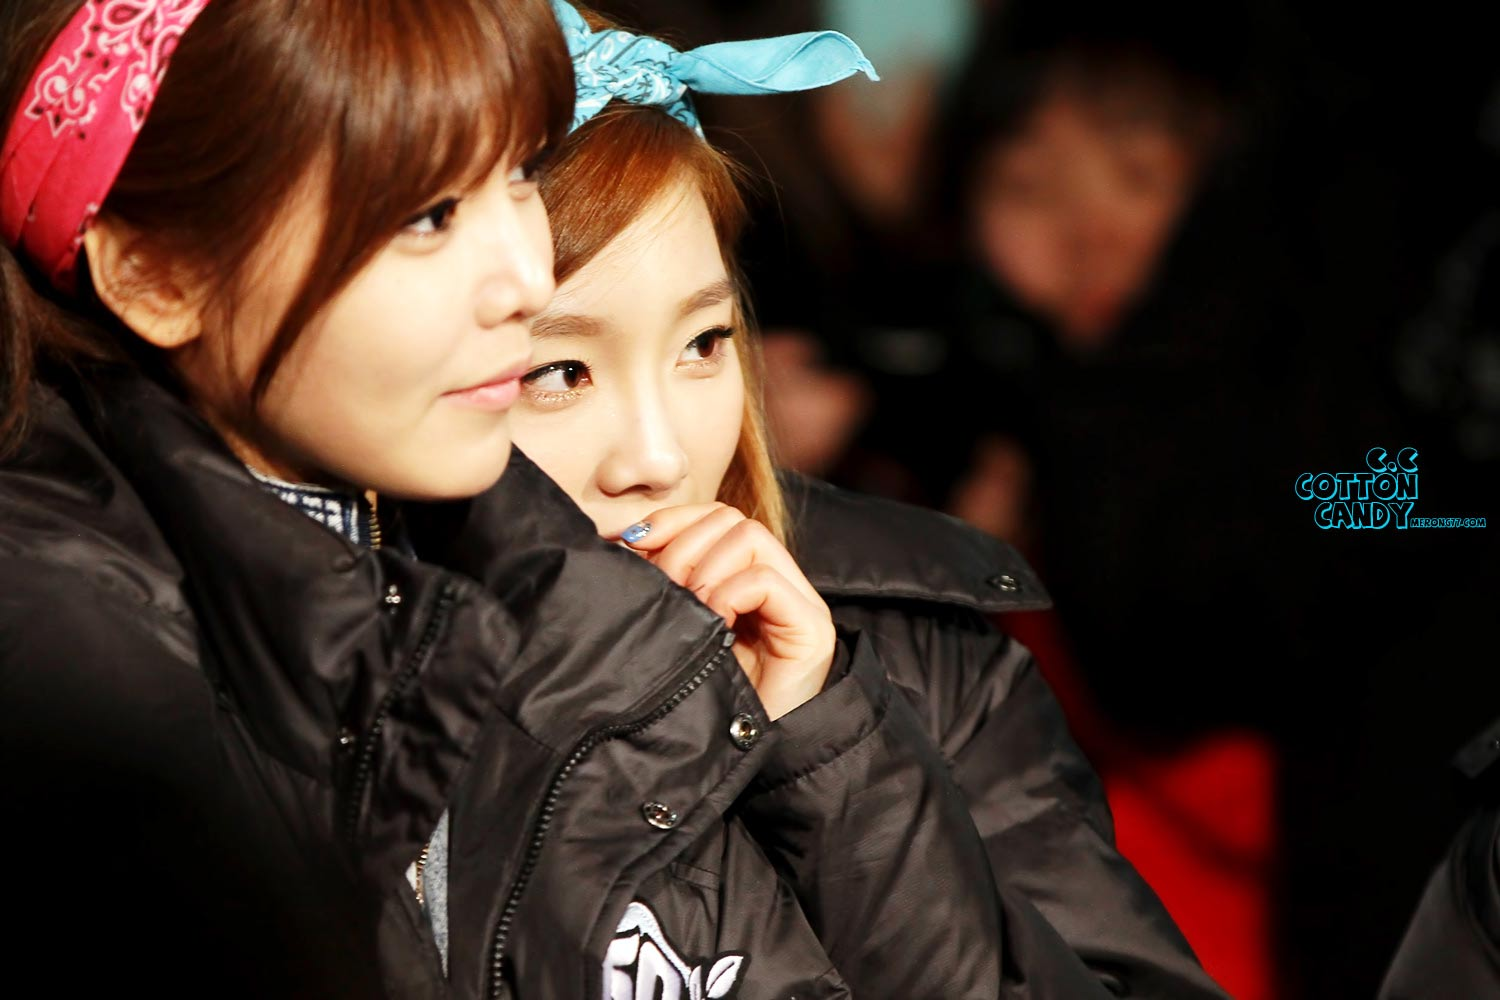 snsd dating Snsd dating experiences started by sophb14 , mar 13 2014 07:56 pm this topic has been archived this means that you cannot reply to this topic 12 replies to this topic poll: which snsd member has had the most boyfriends (54 member(s) have cast votes.